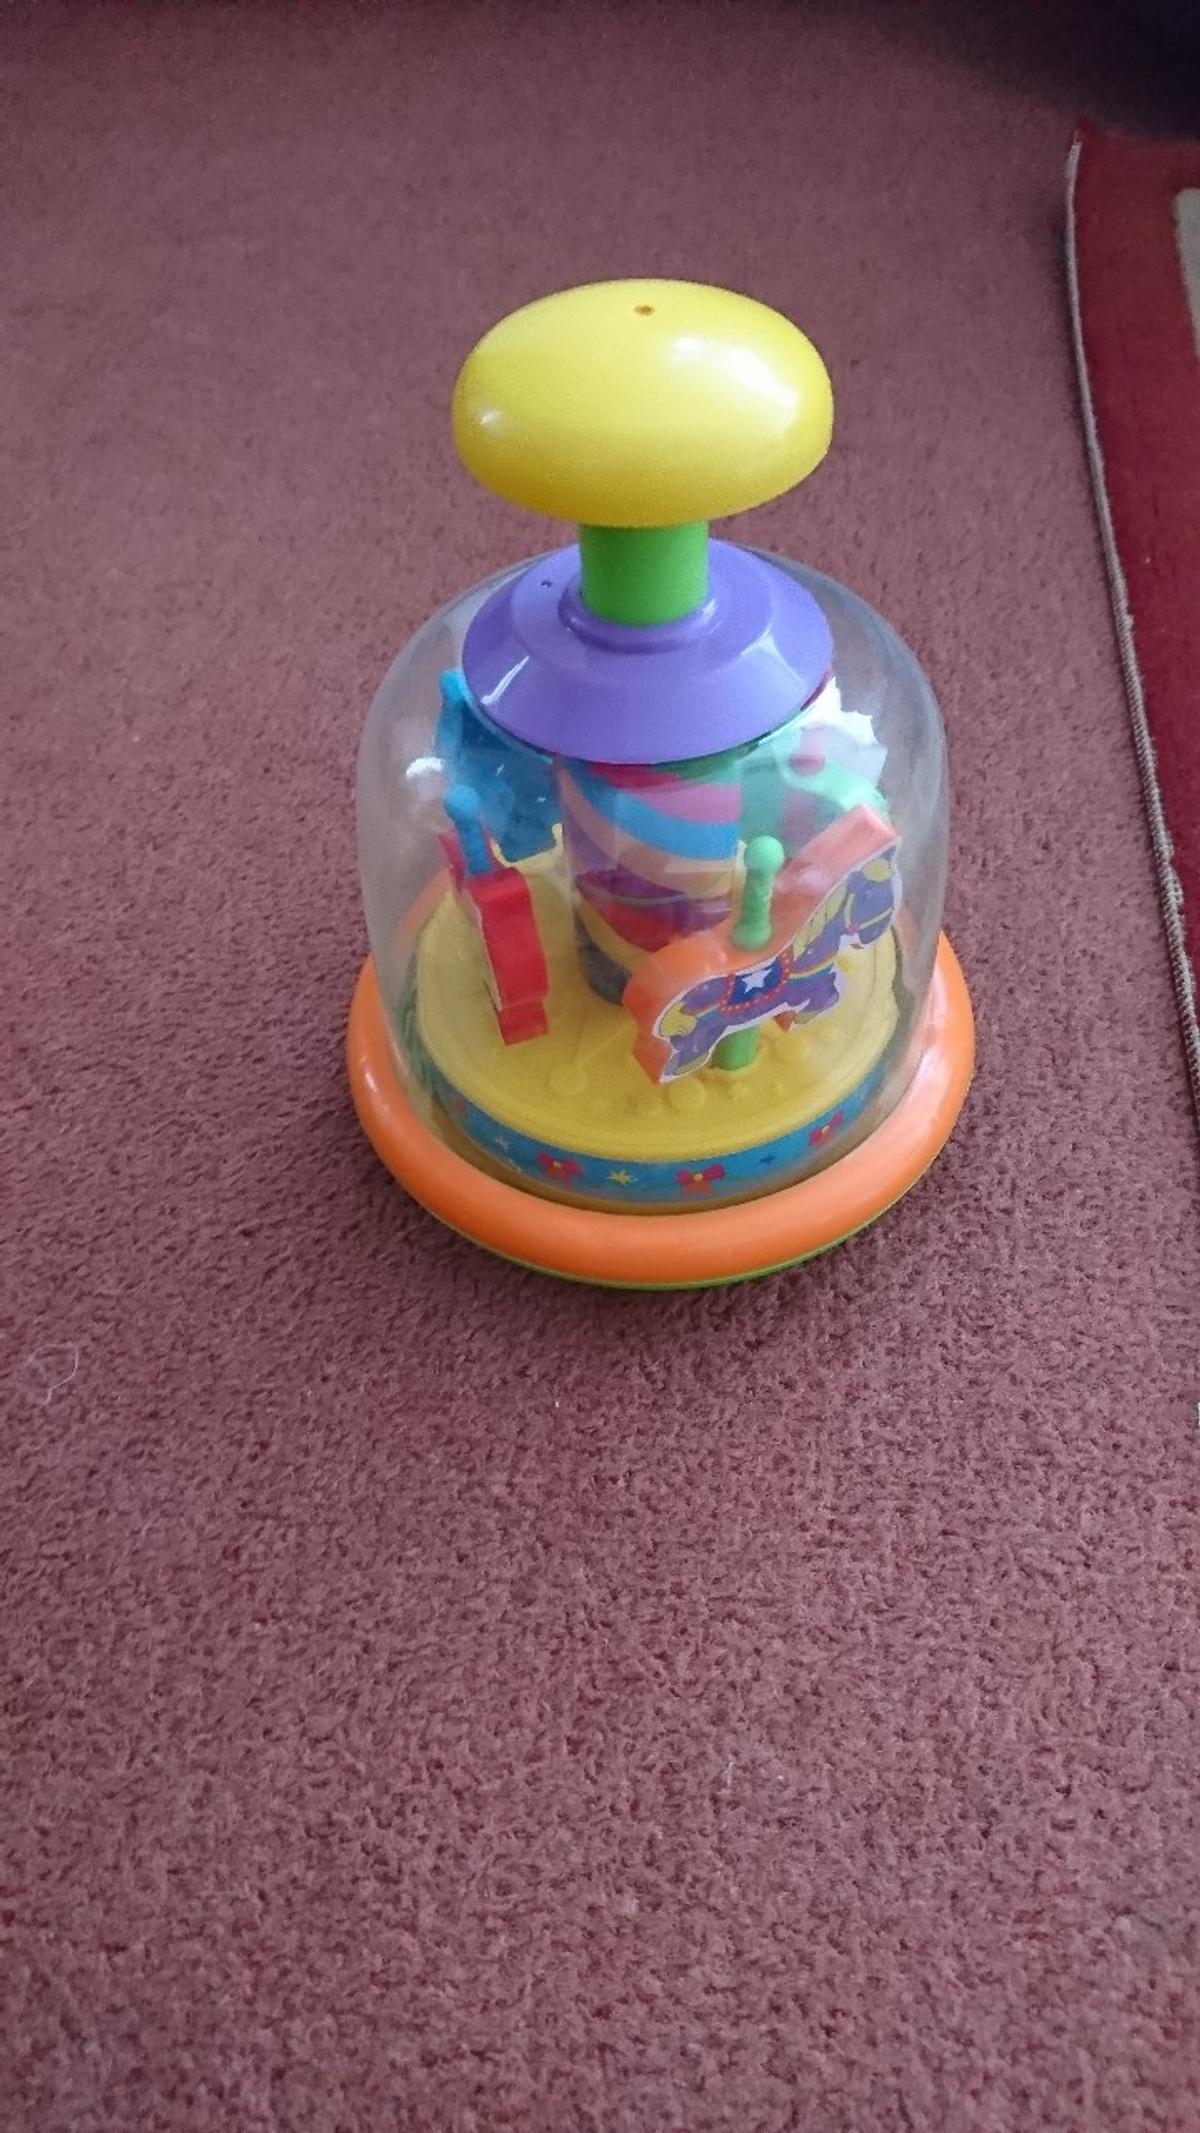 Three toys for £10